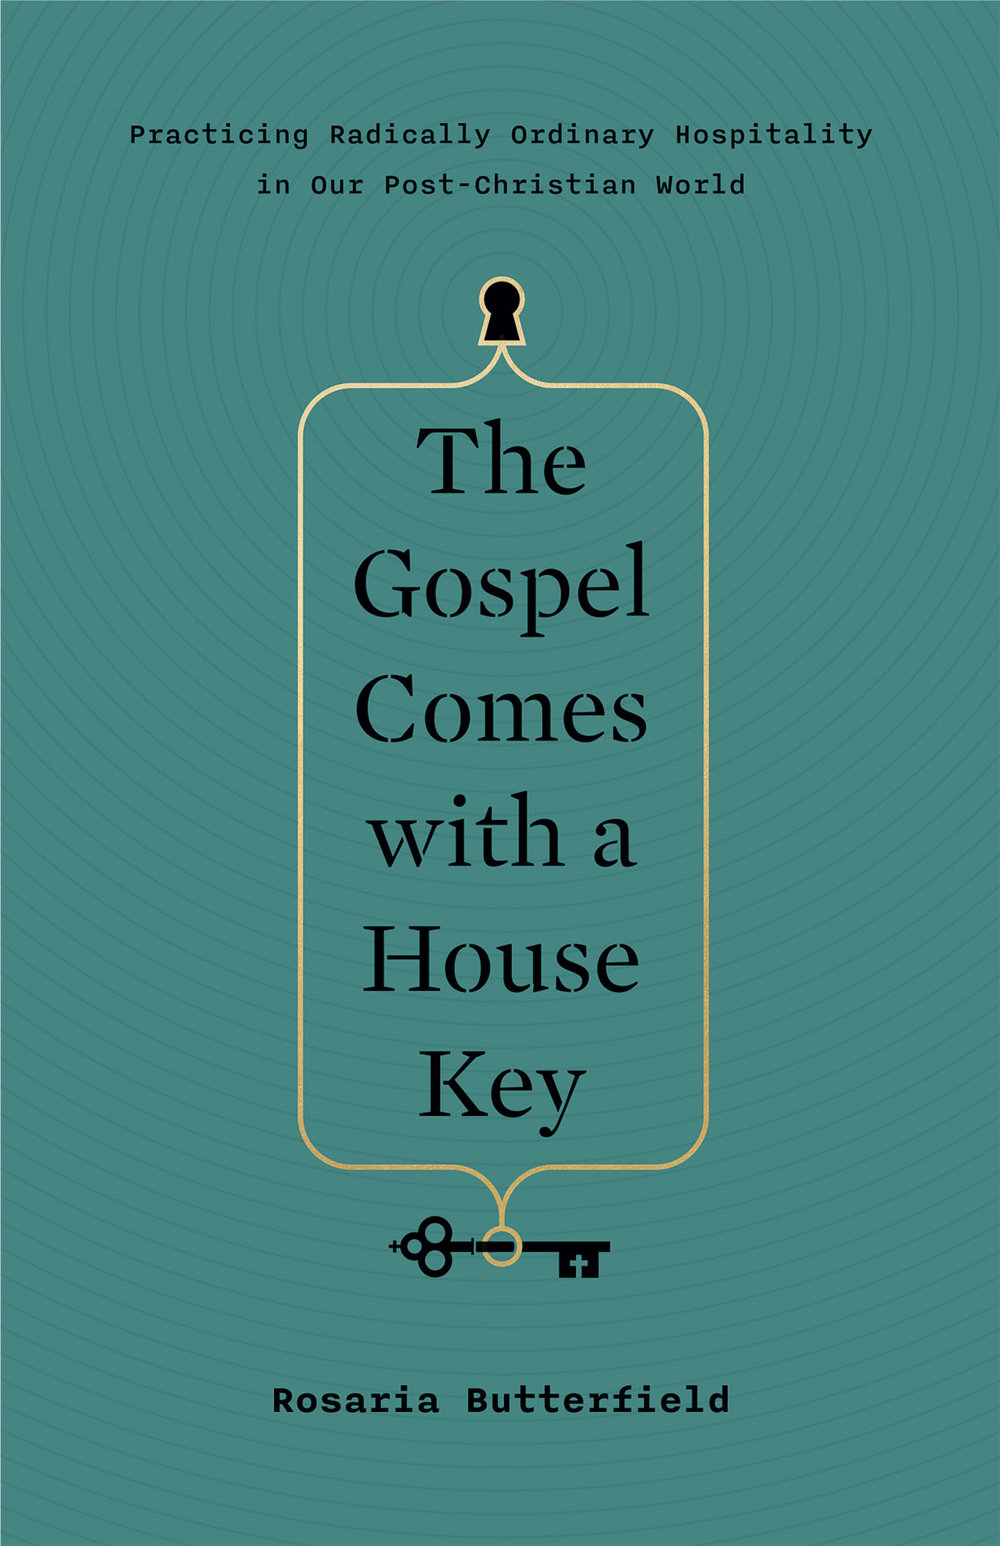 Gospel-Comes-with-a-House-Key.jpg